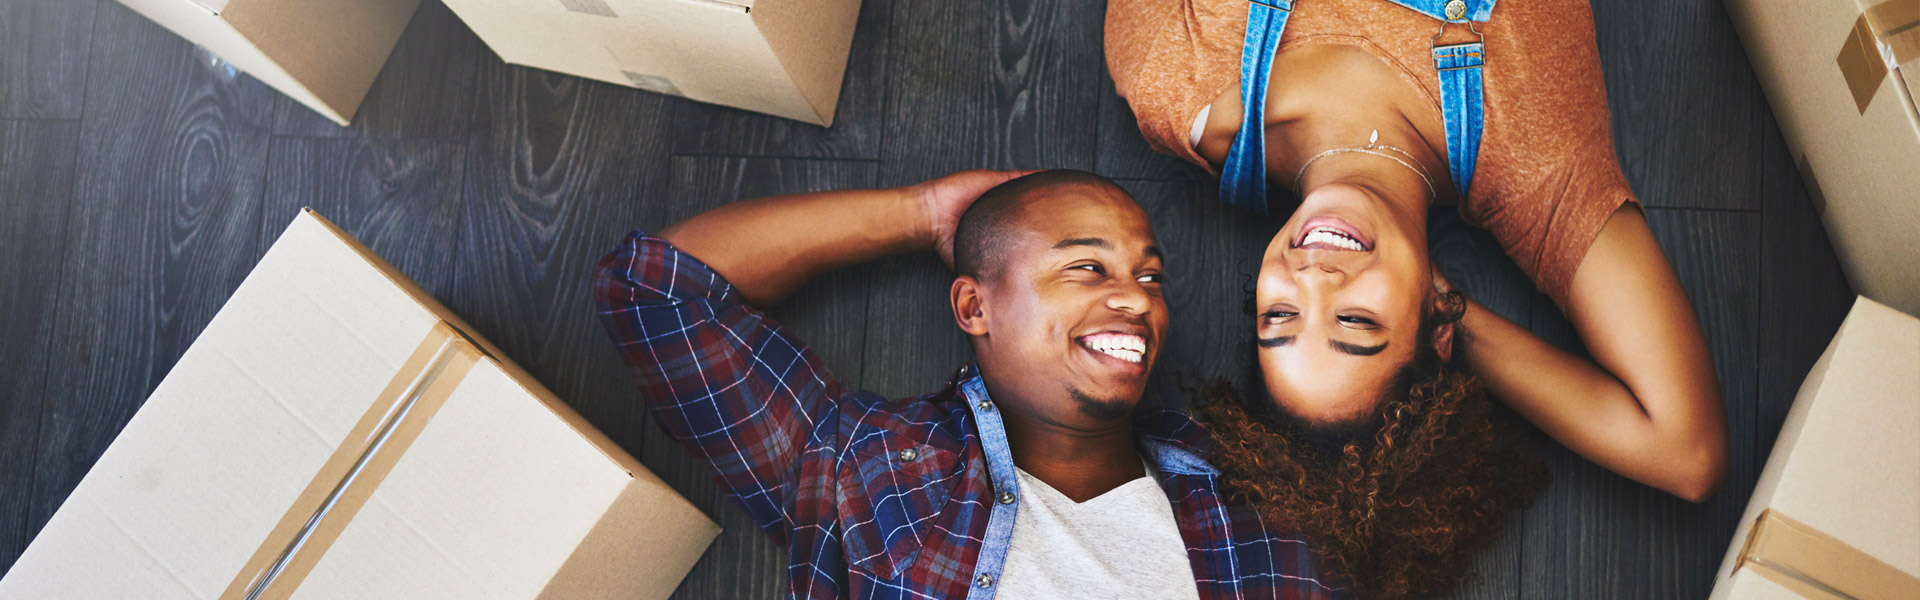 man and woman laying on floor smiling with packaged moving boxes around them